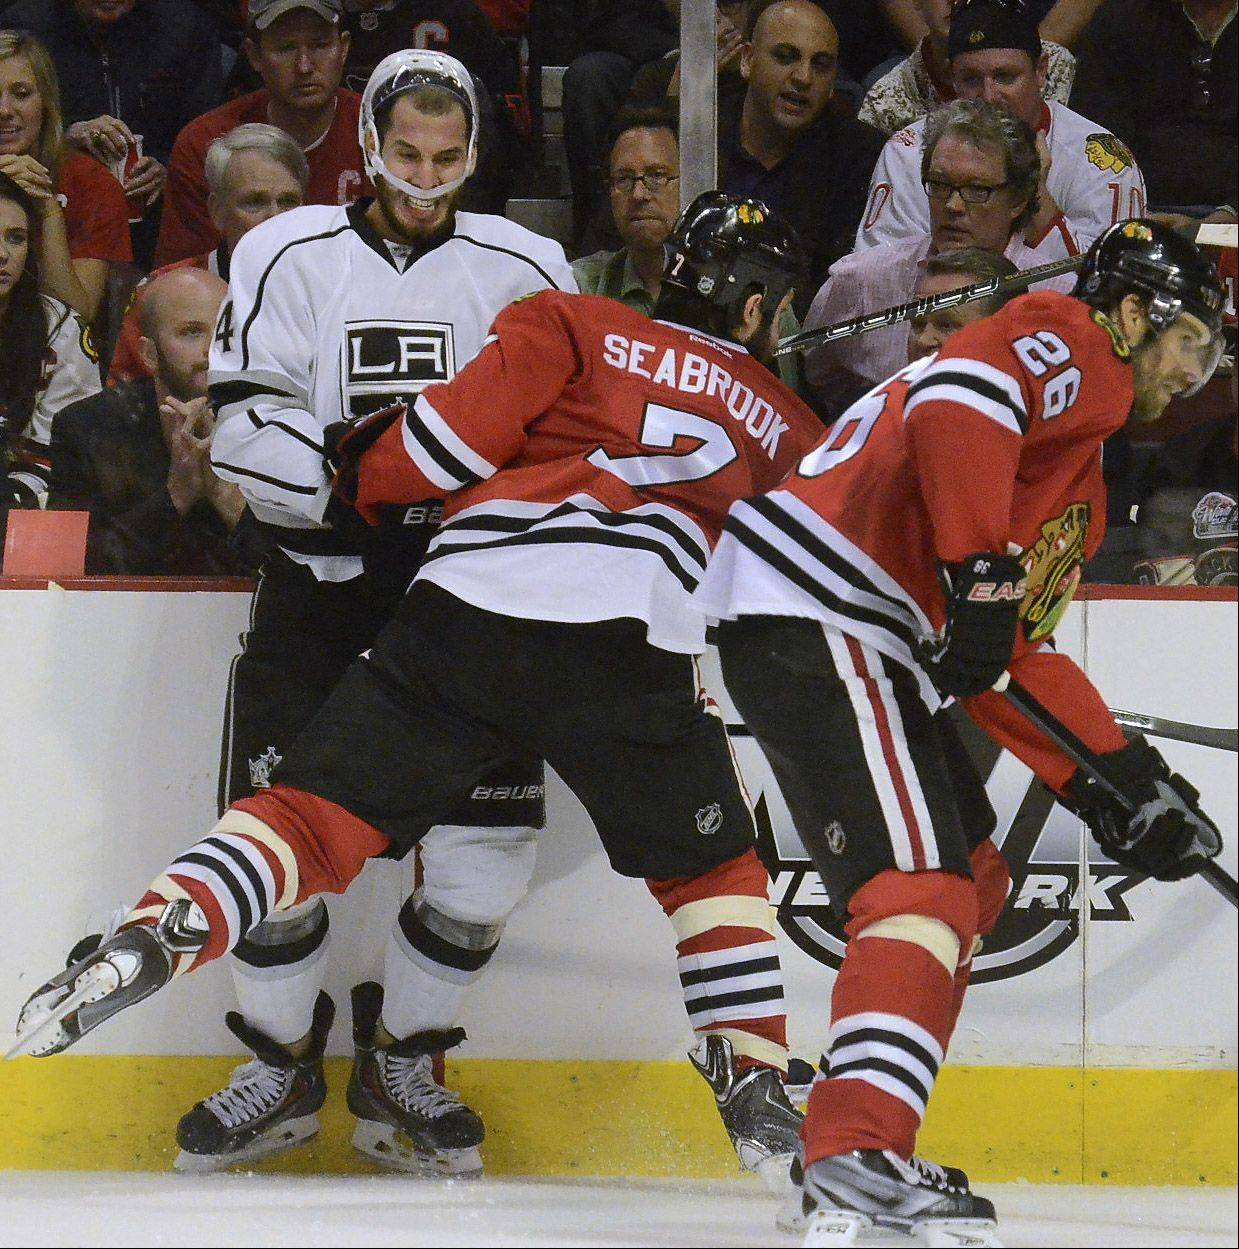 The Kings Dwight King gets nailed by Brent Seabrook in second-period action in Game 1 of the Western Conference finals between the Chicago Blackhawks and the Los Angeles Kings.